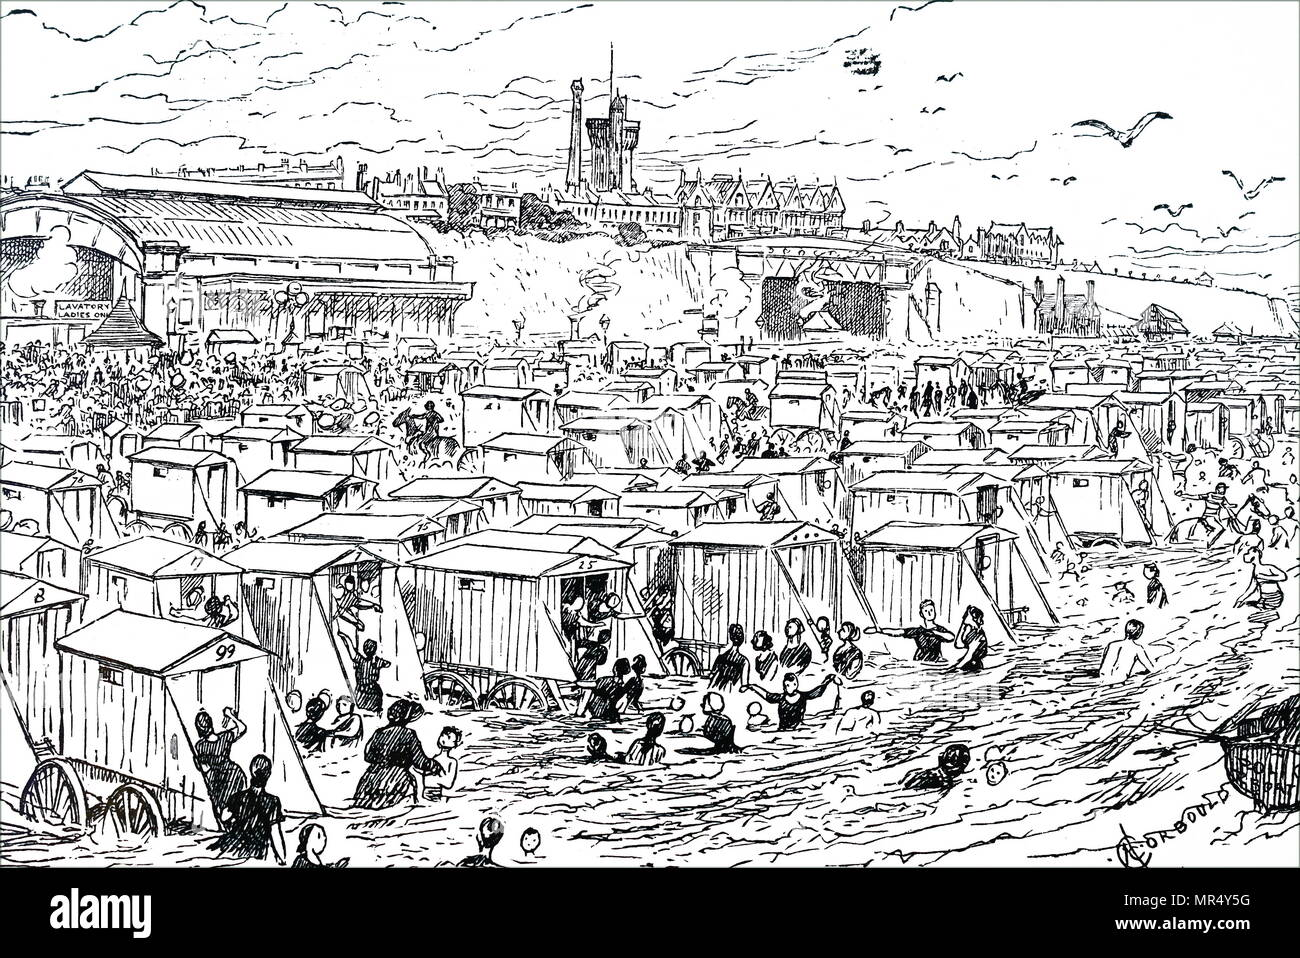 Cartoon depicting a typical Victorian British seaside resort. The beach and sea has been taken over by holidaymakers. Dated 19th century - Stock Image